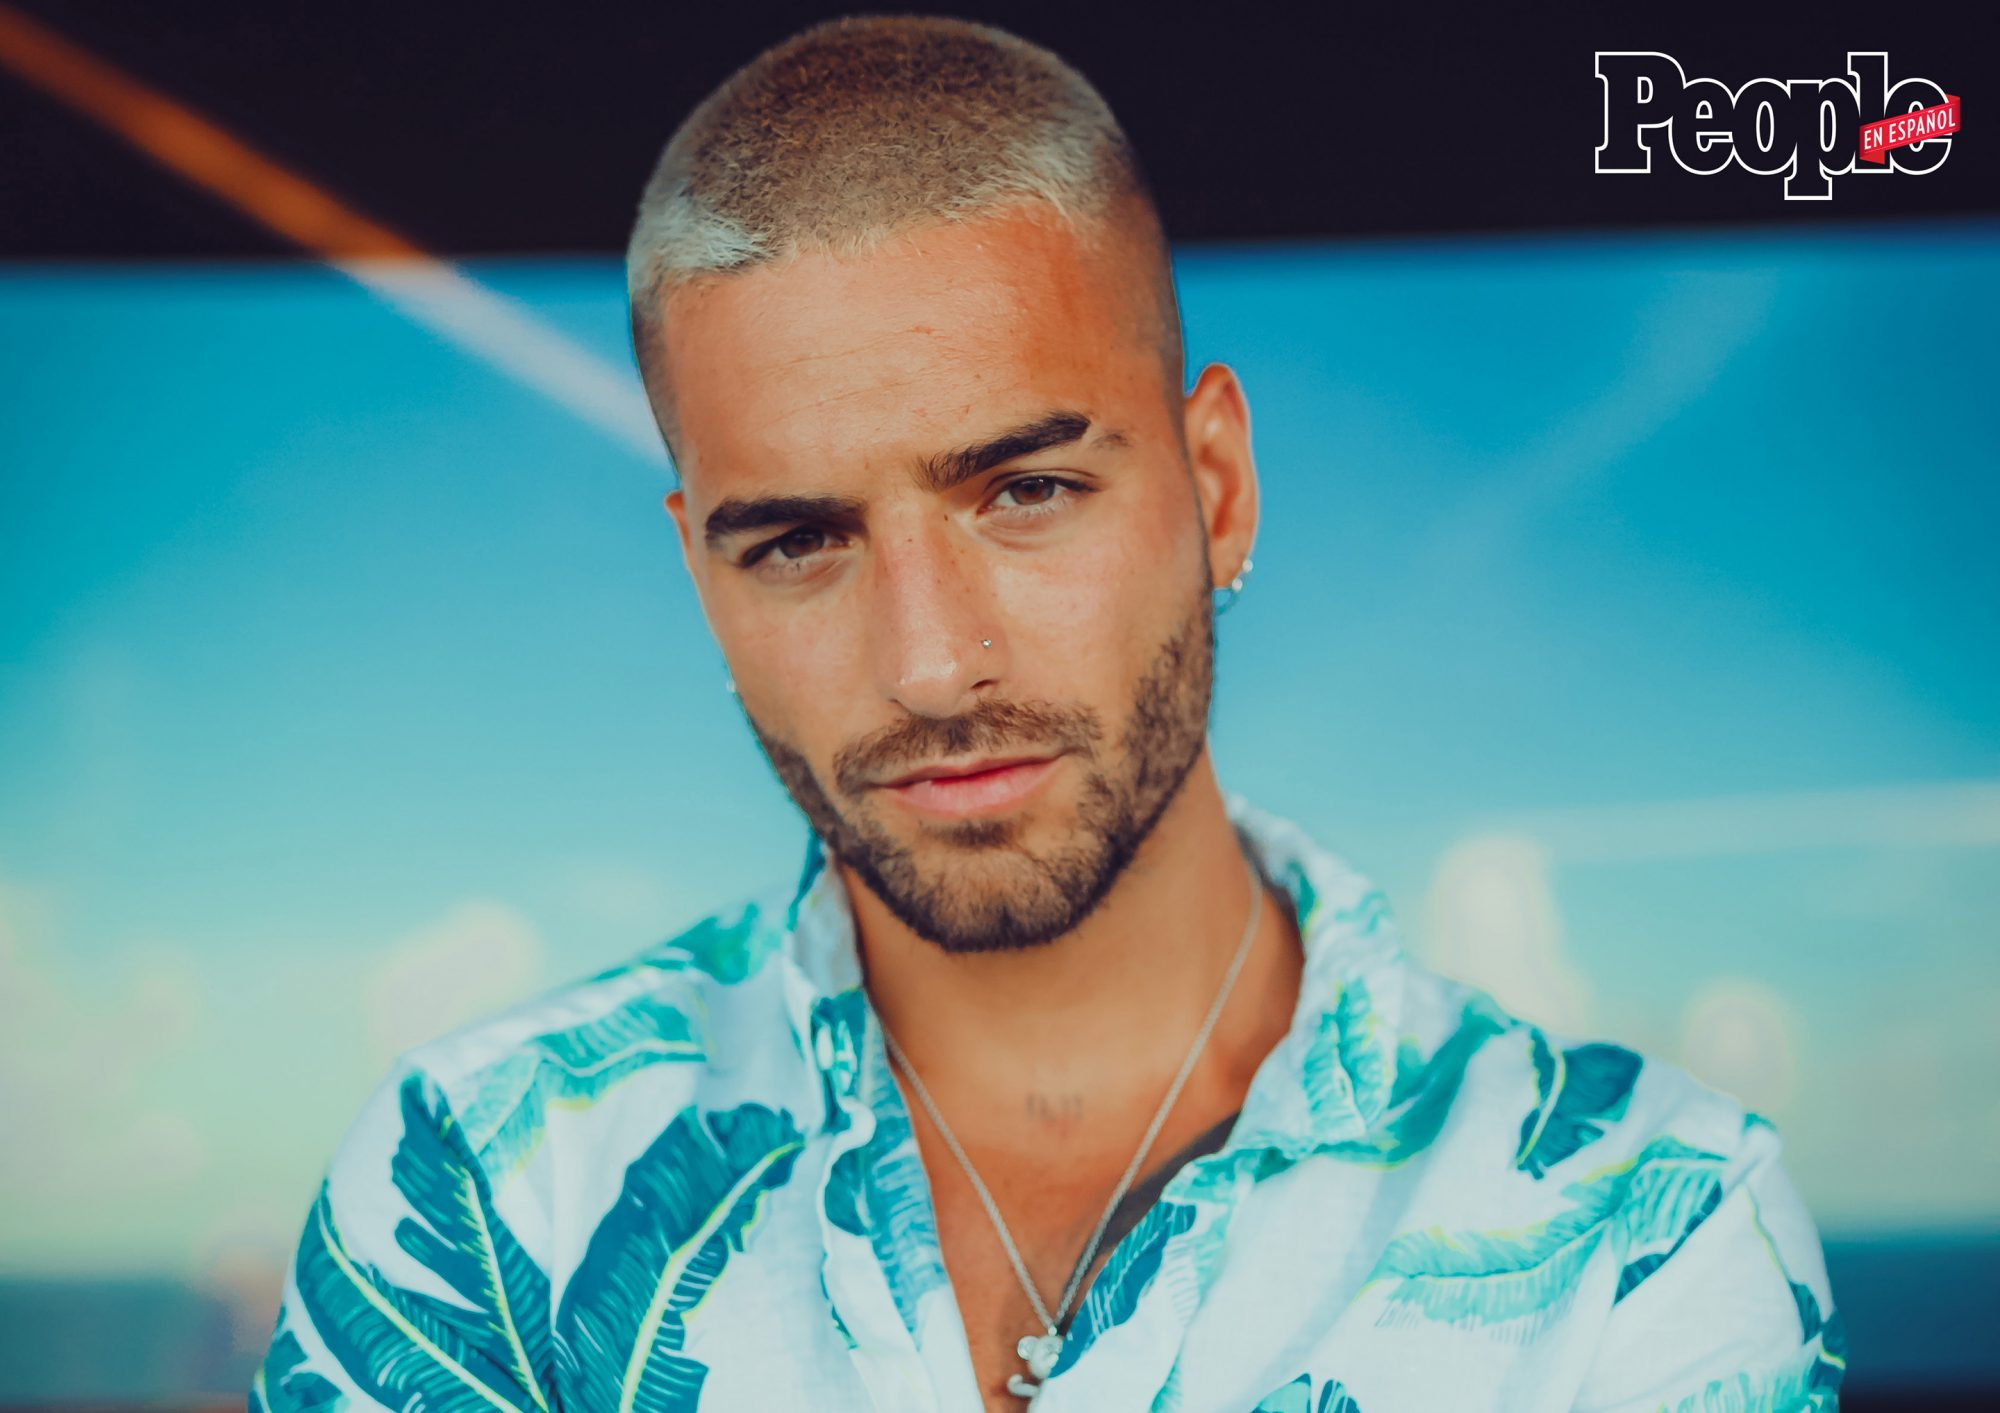 Maluma Main Photo - Digital Cover (DO NOT REUSE)